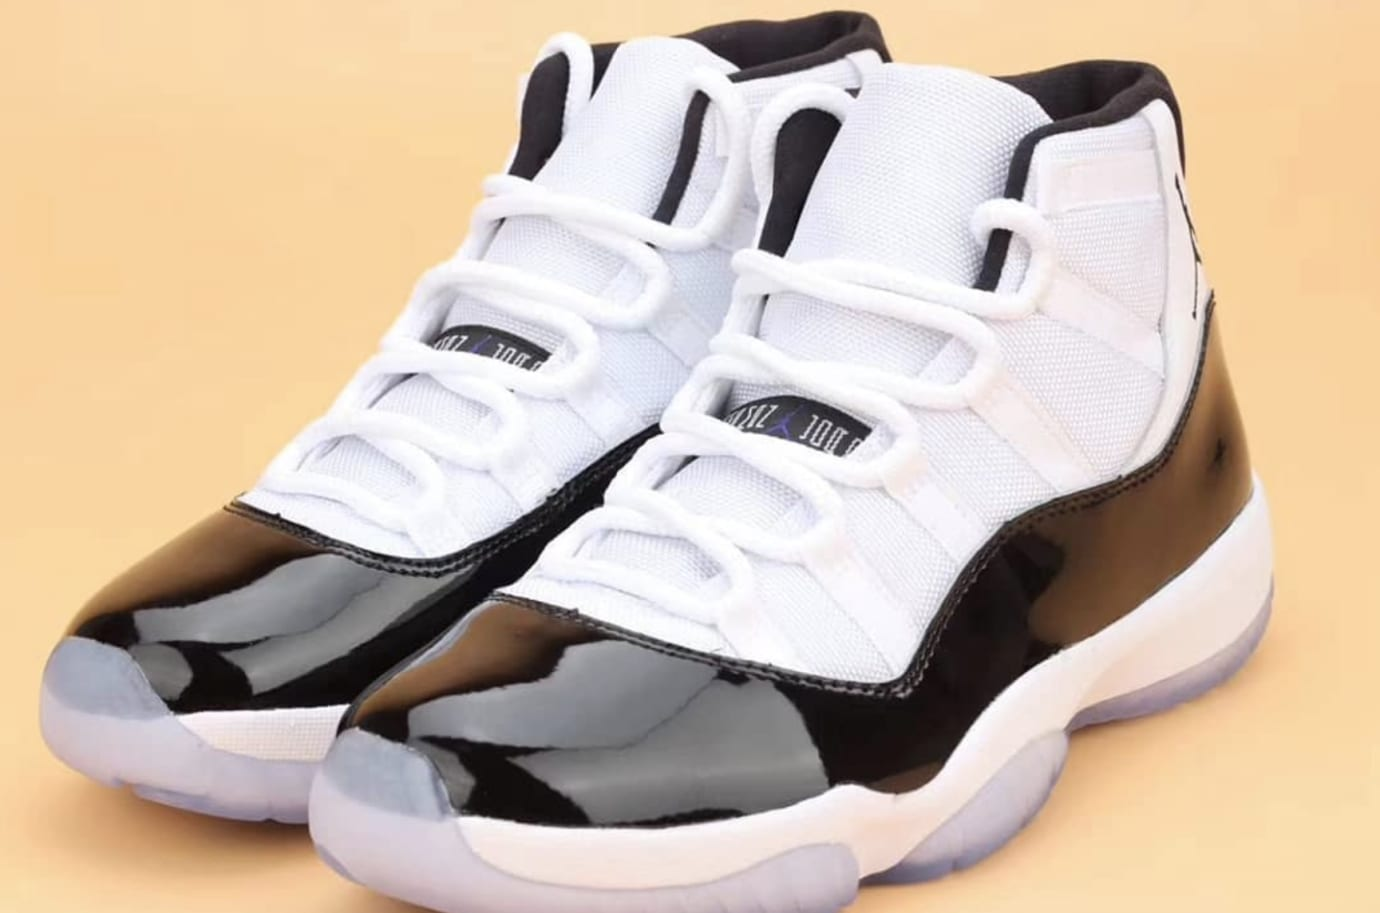 9da781987ed5 Concord  Air Jordan 11 Returning In 2018 378037-100